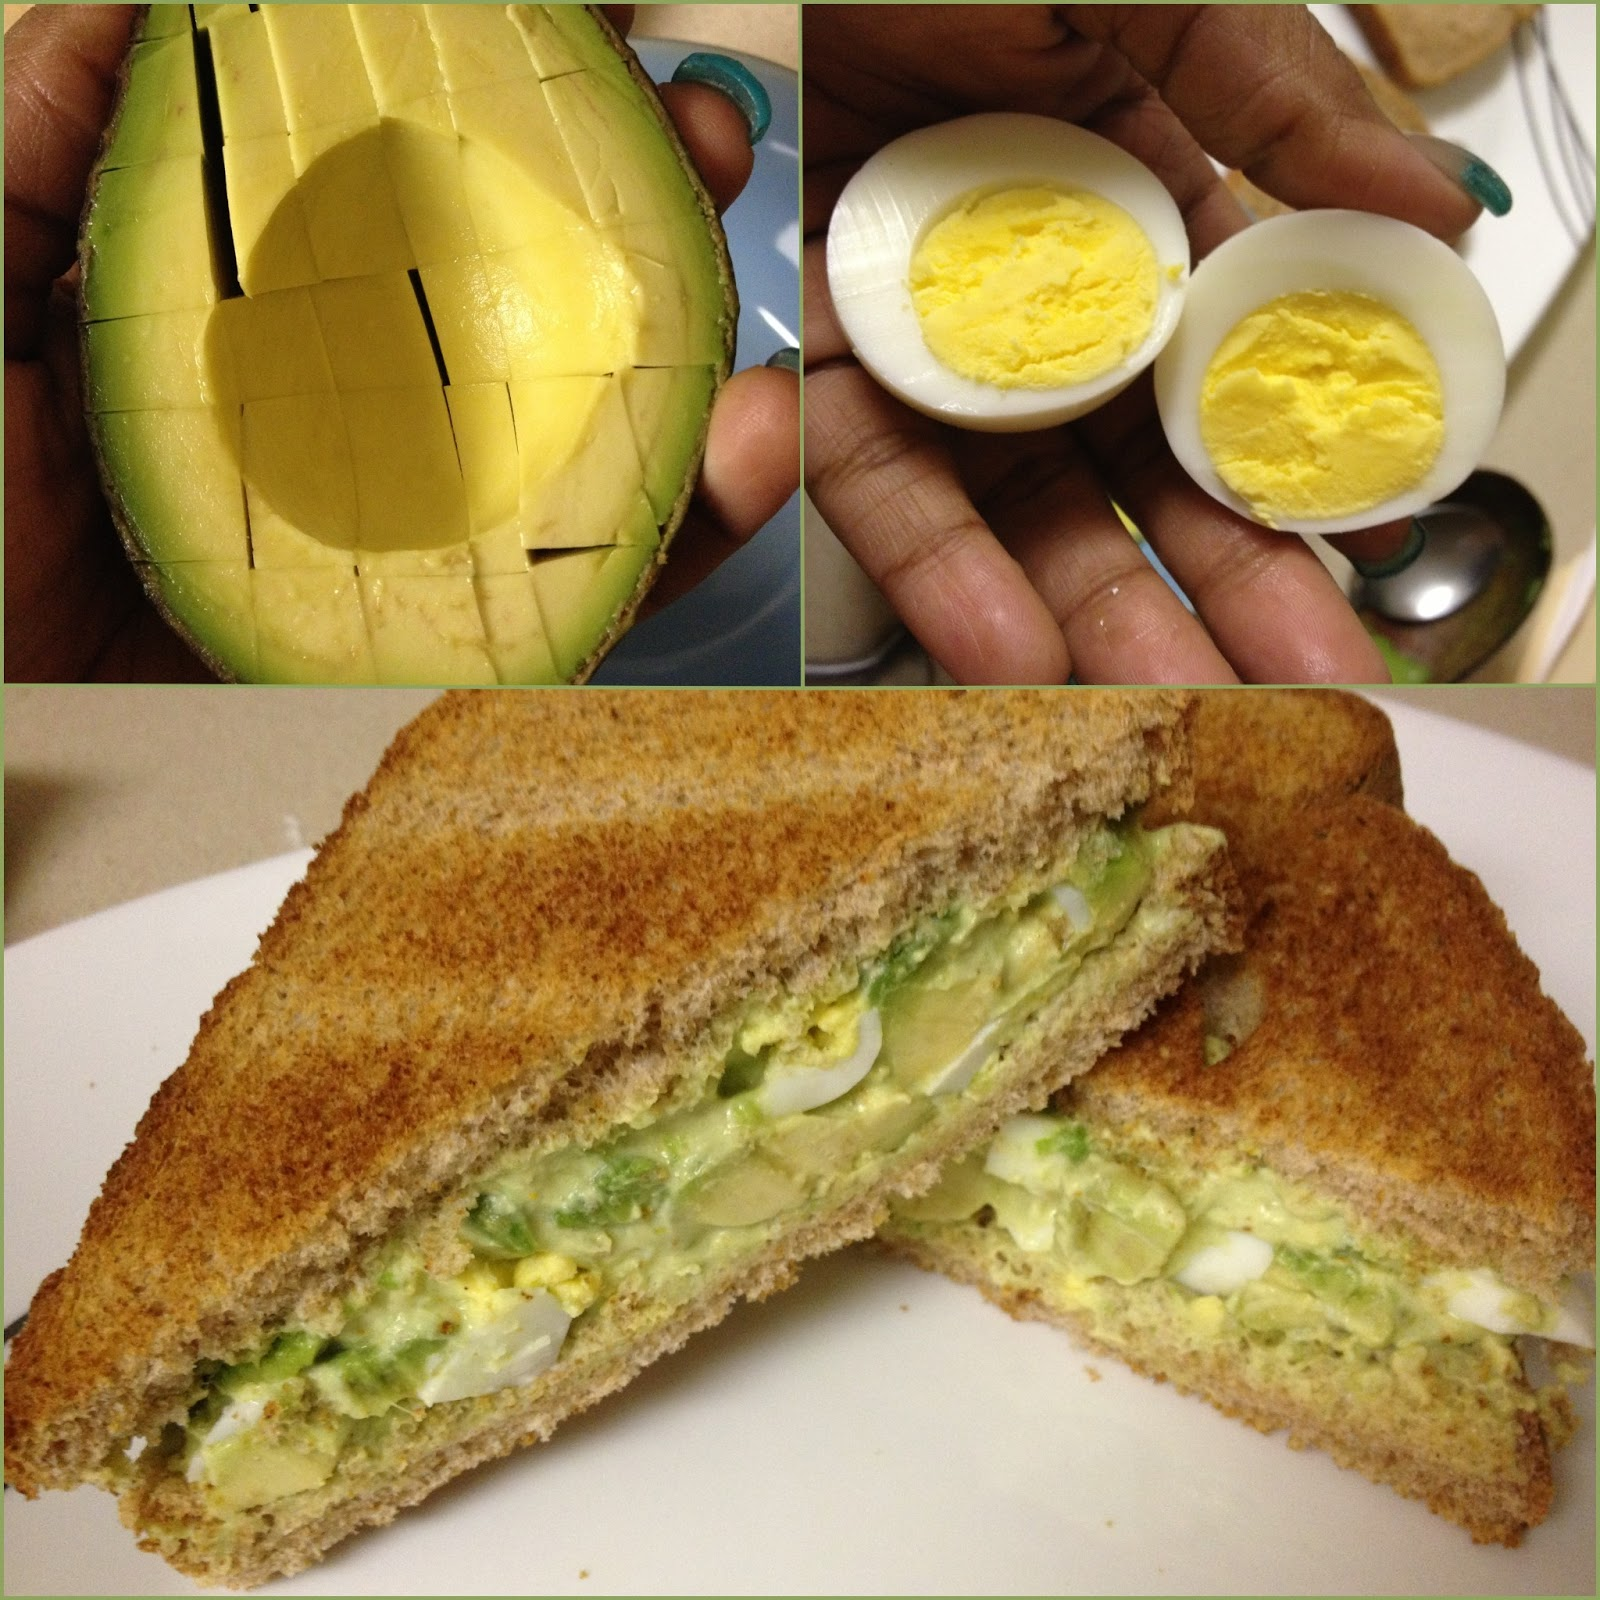 how to cut avocado for sandwich